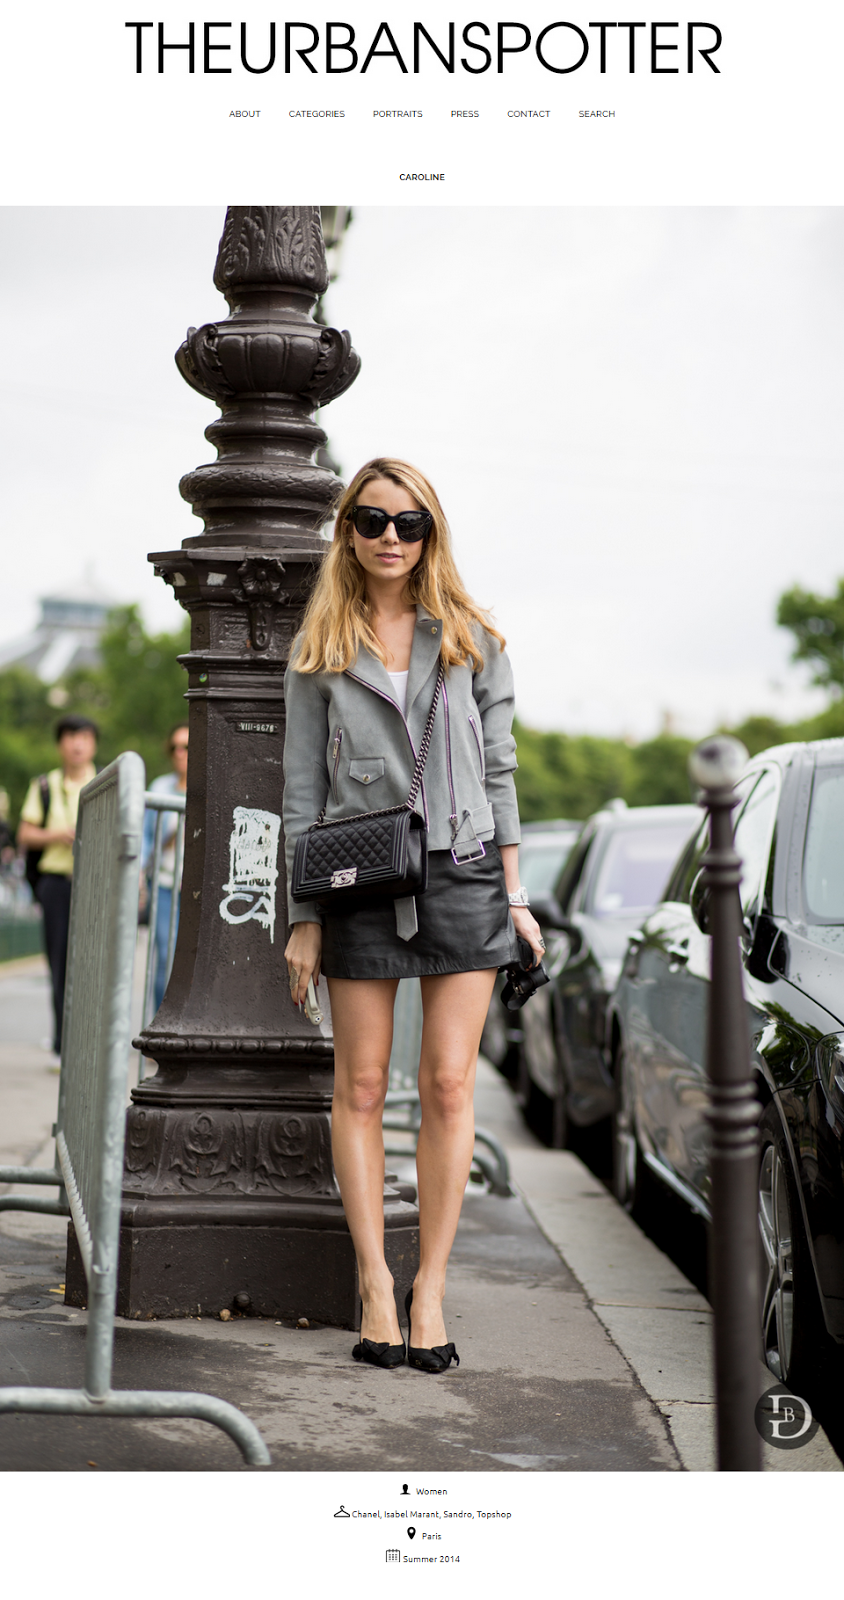 streetstyle, theurbanspotter, chanel, fashionweek, chic, fashion blogger, haute couture,isabel marant, topshop